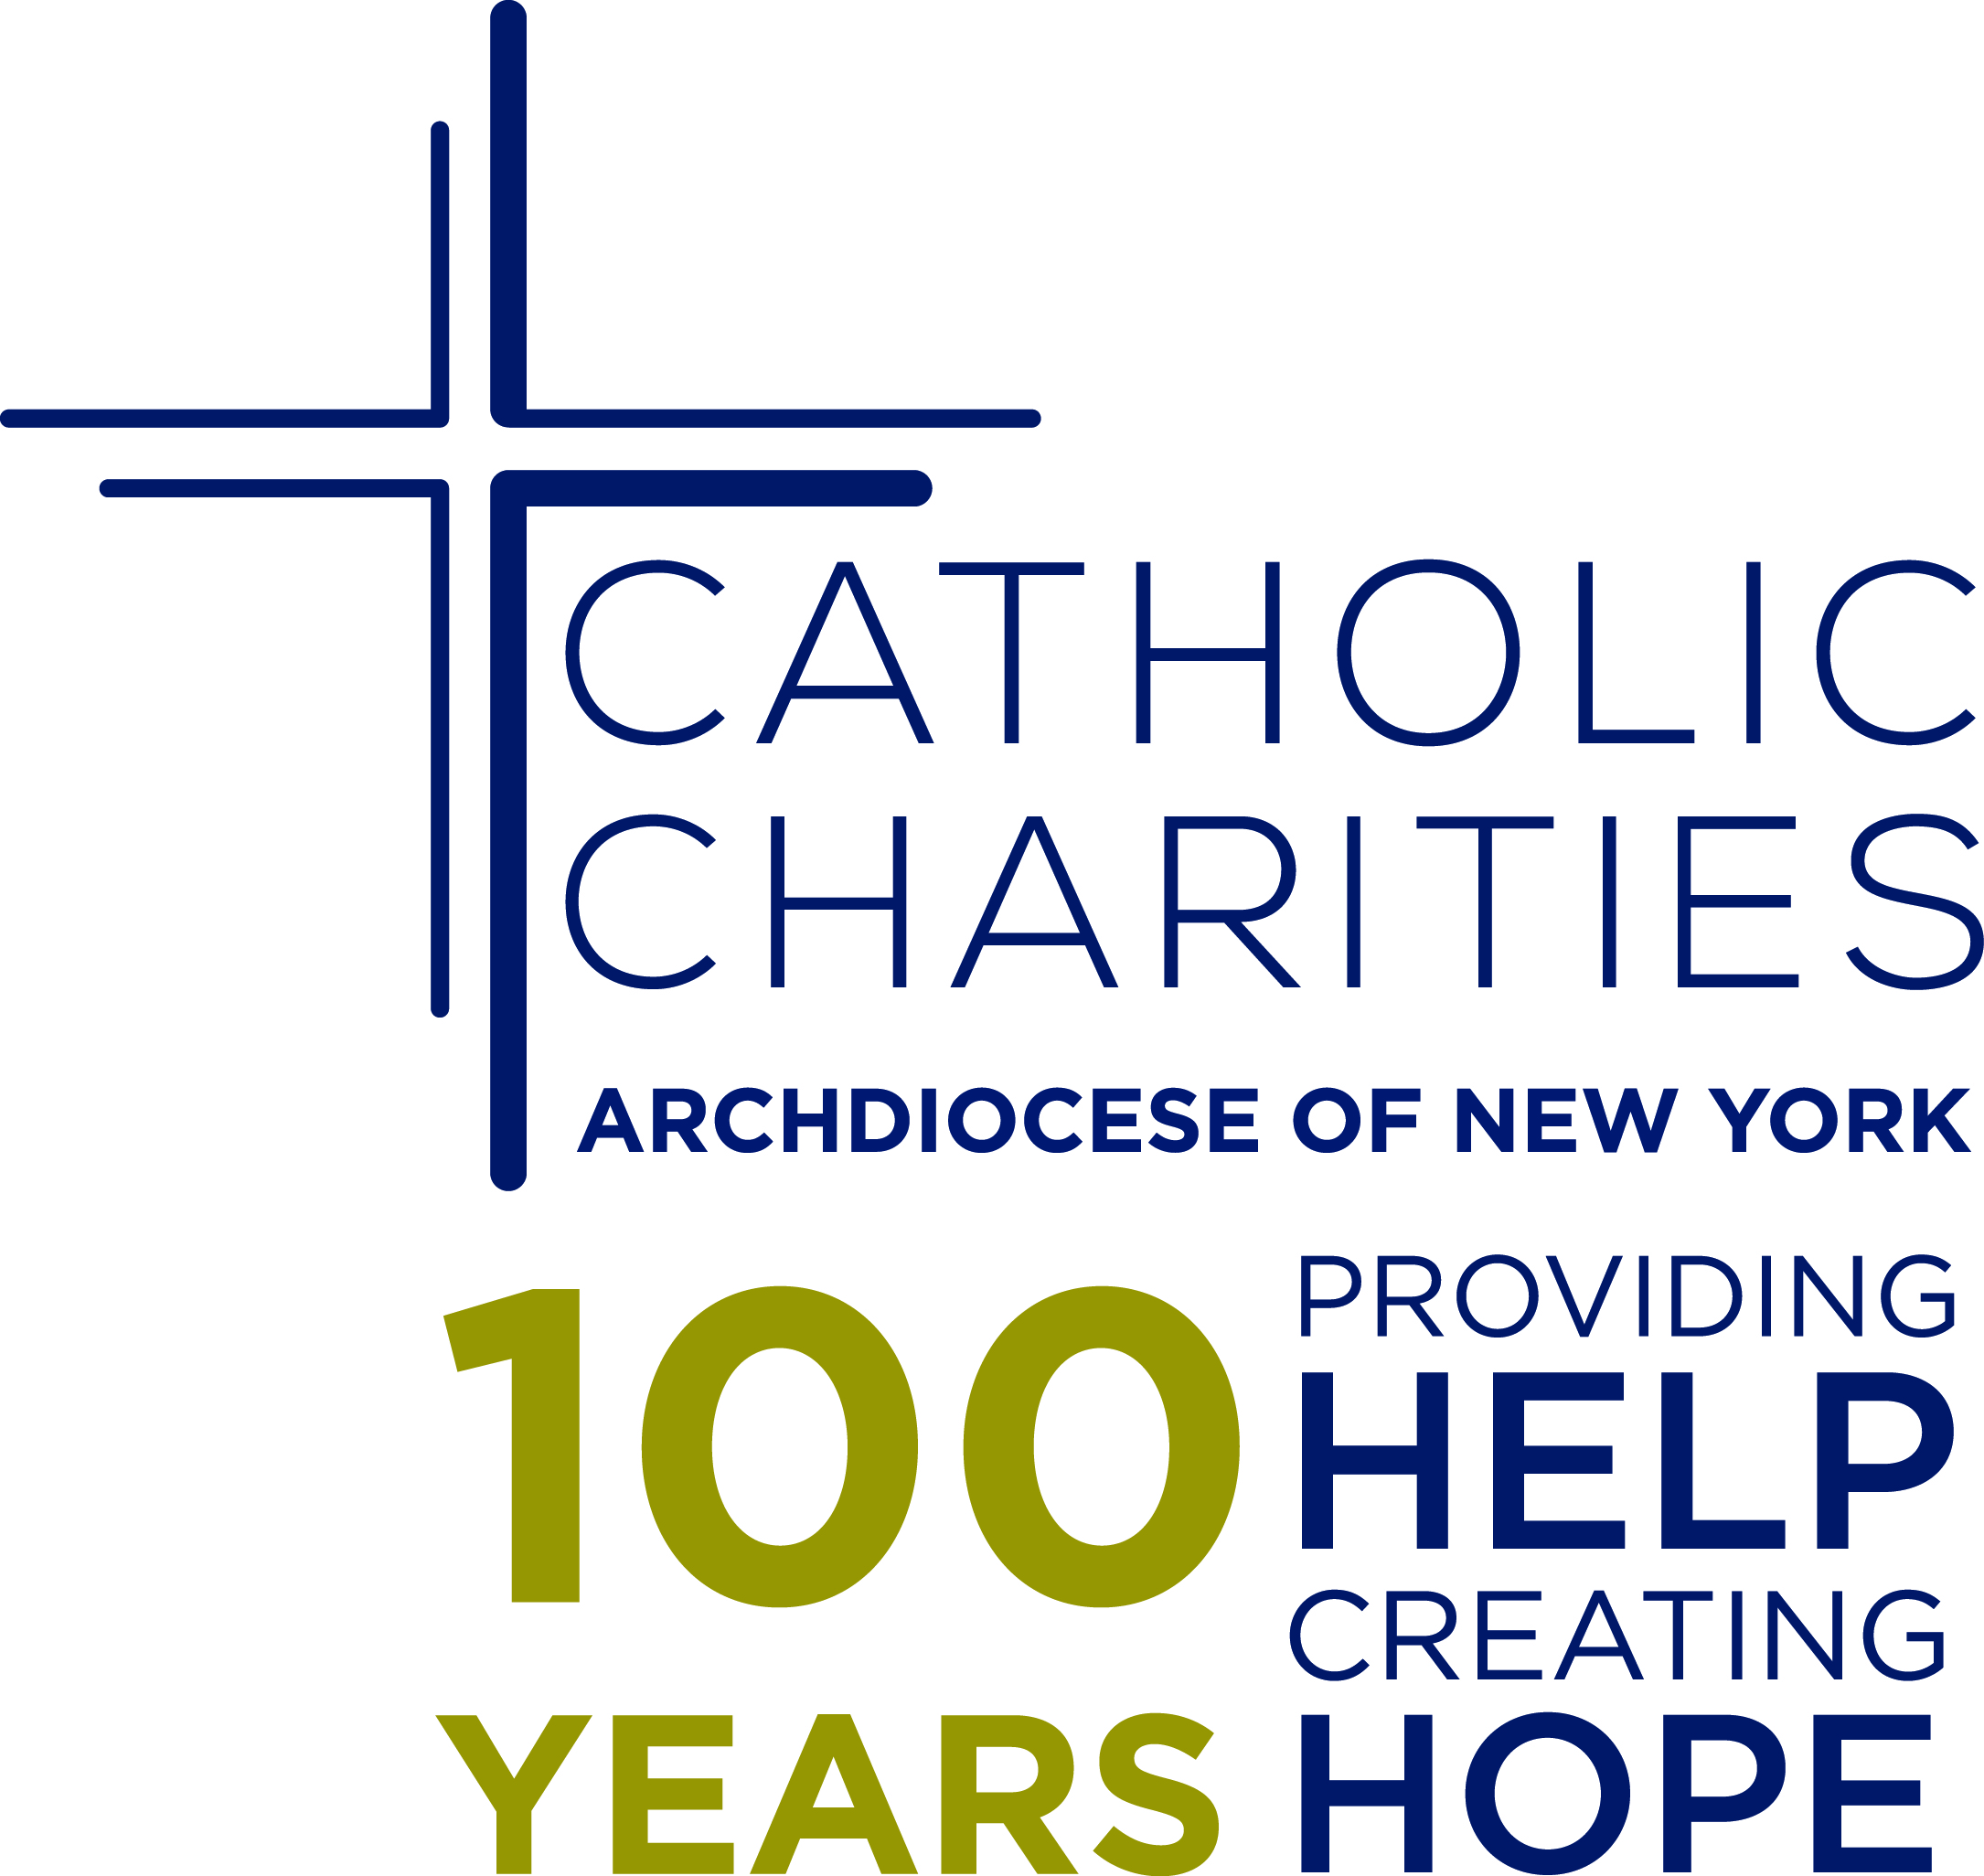 Catholic Charities of the Archdiocese of New York's Photo